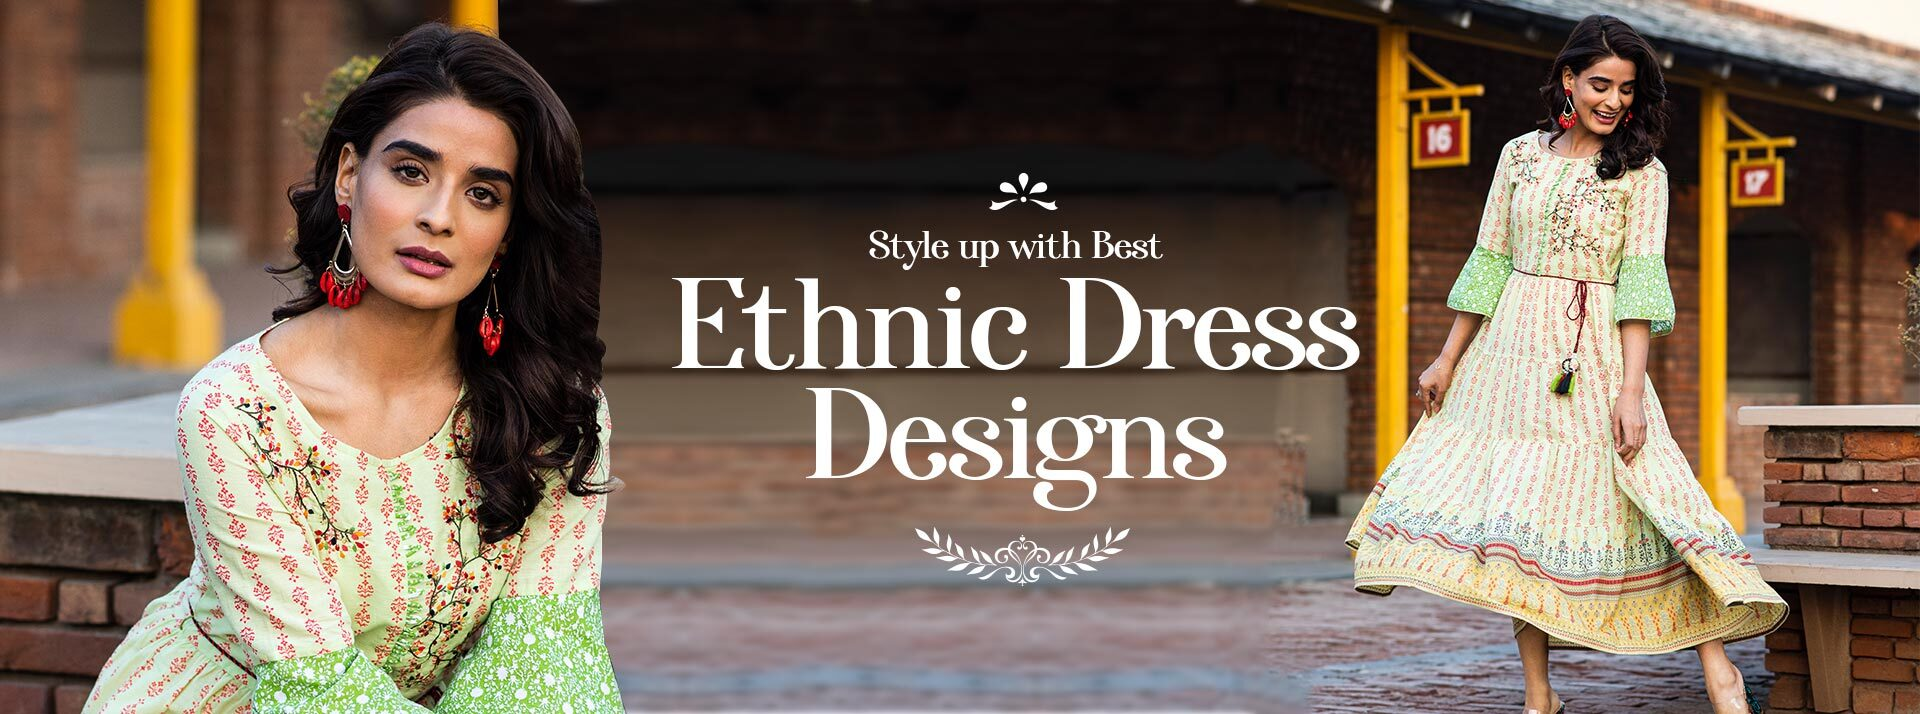 Style Up with Best Ethnic Dress Designs This Summer